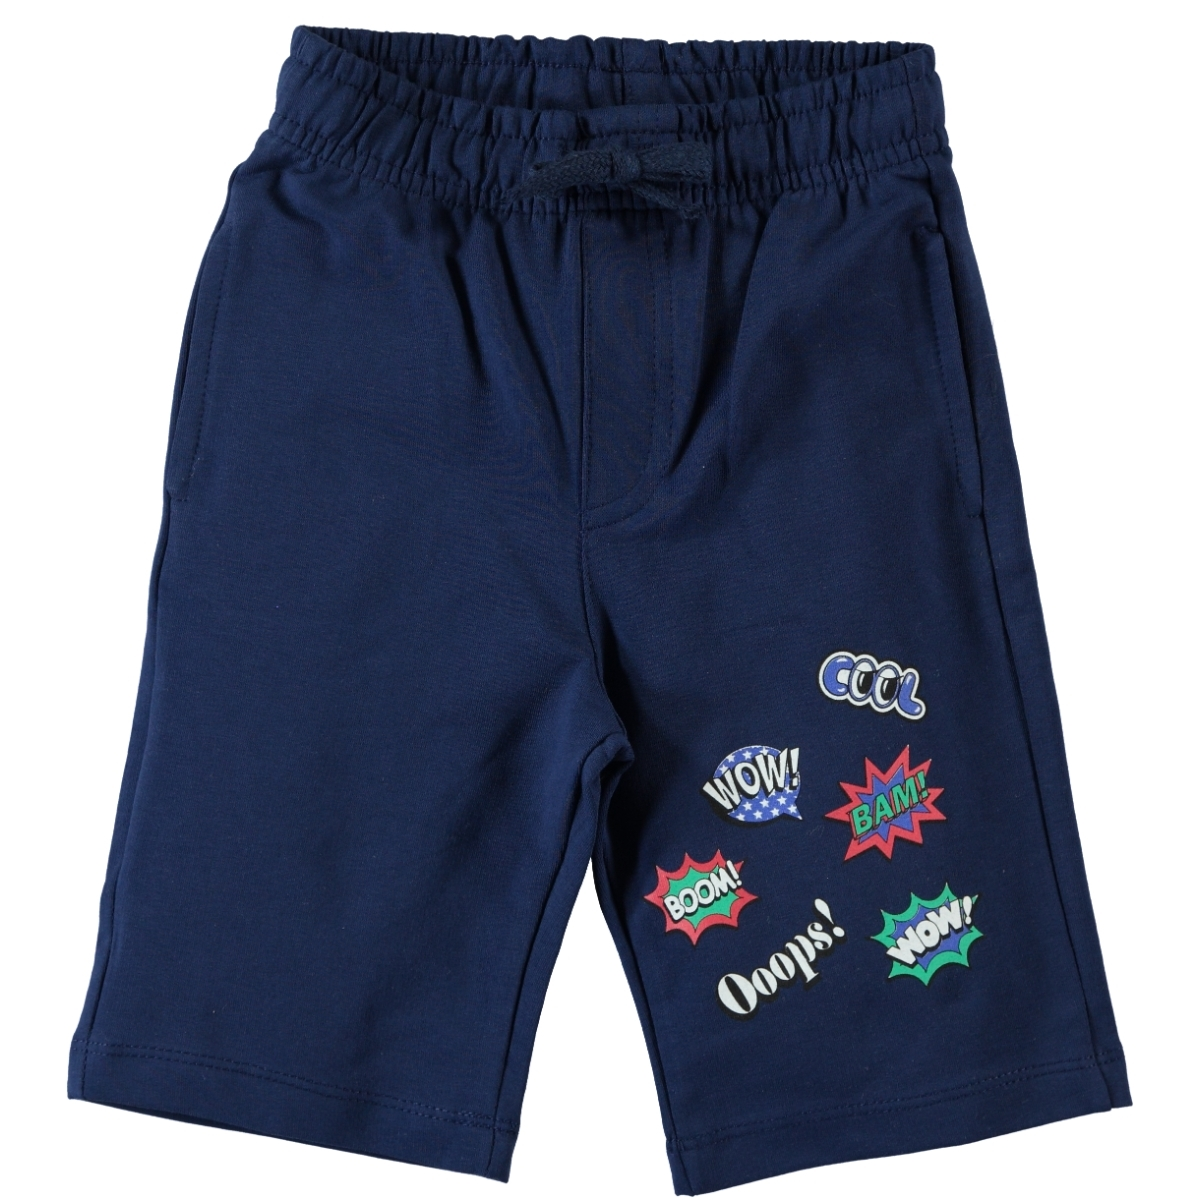 Cvl 2-5 Years Navy Blue Boy Capri